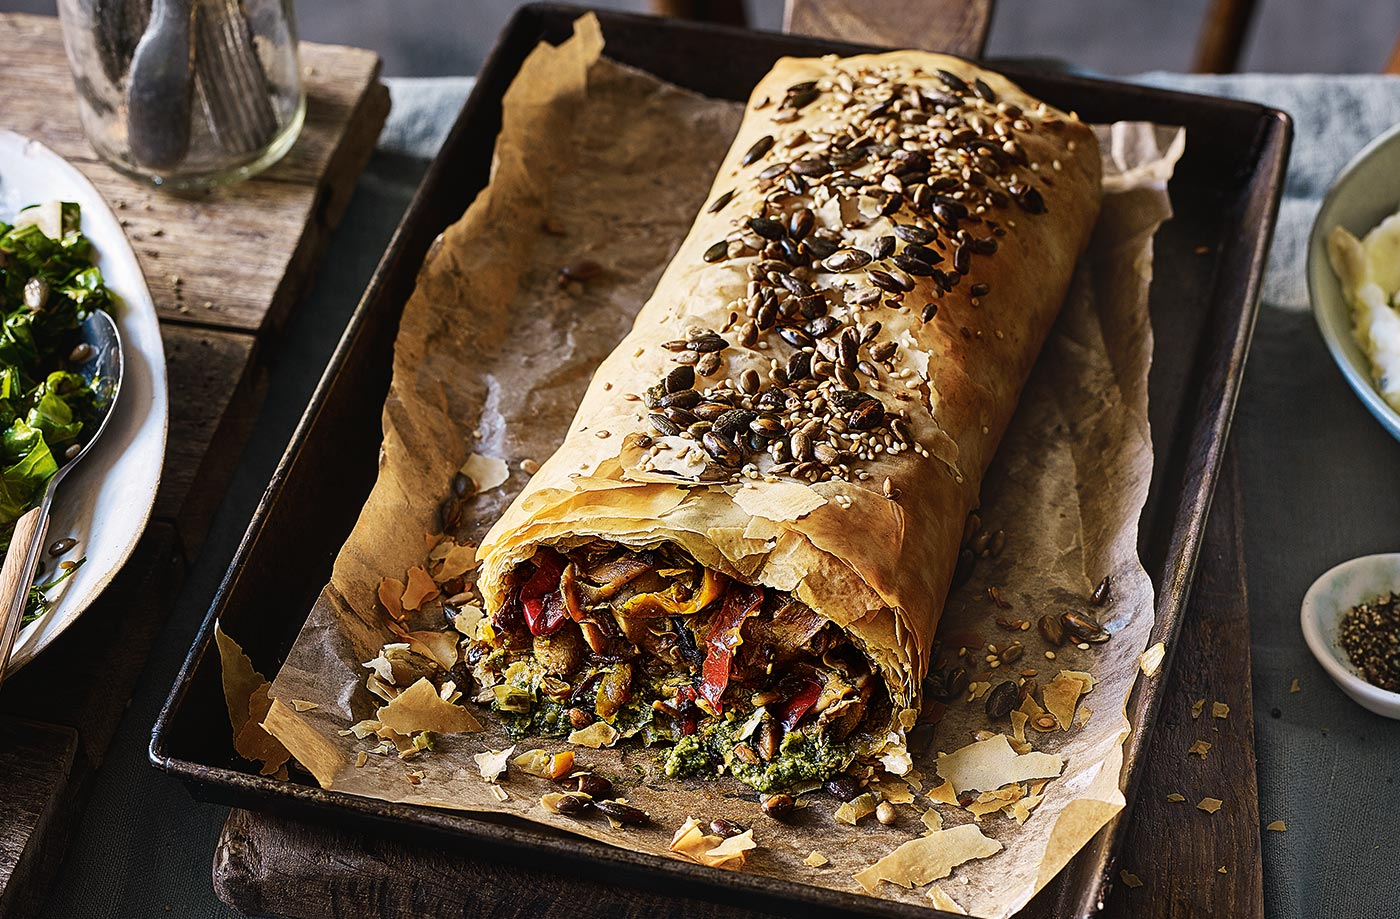 Mushroom, pepper and pesto strudel recipe